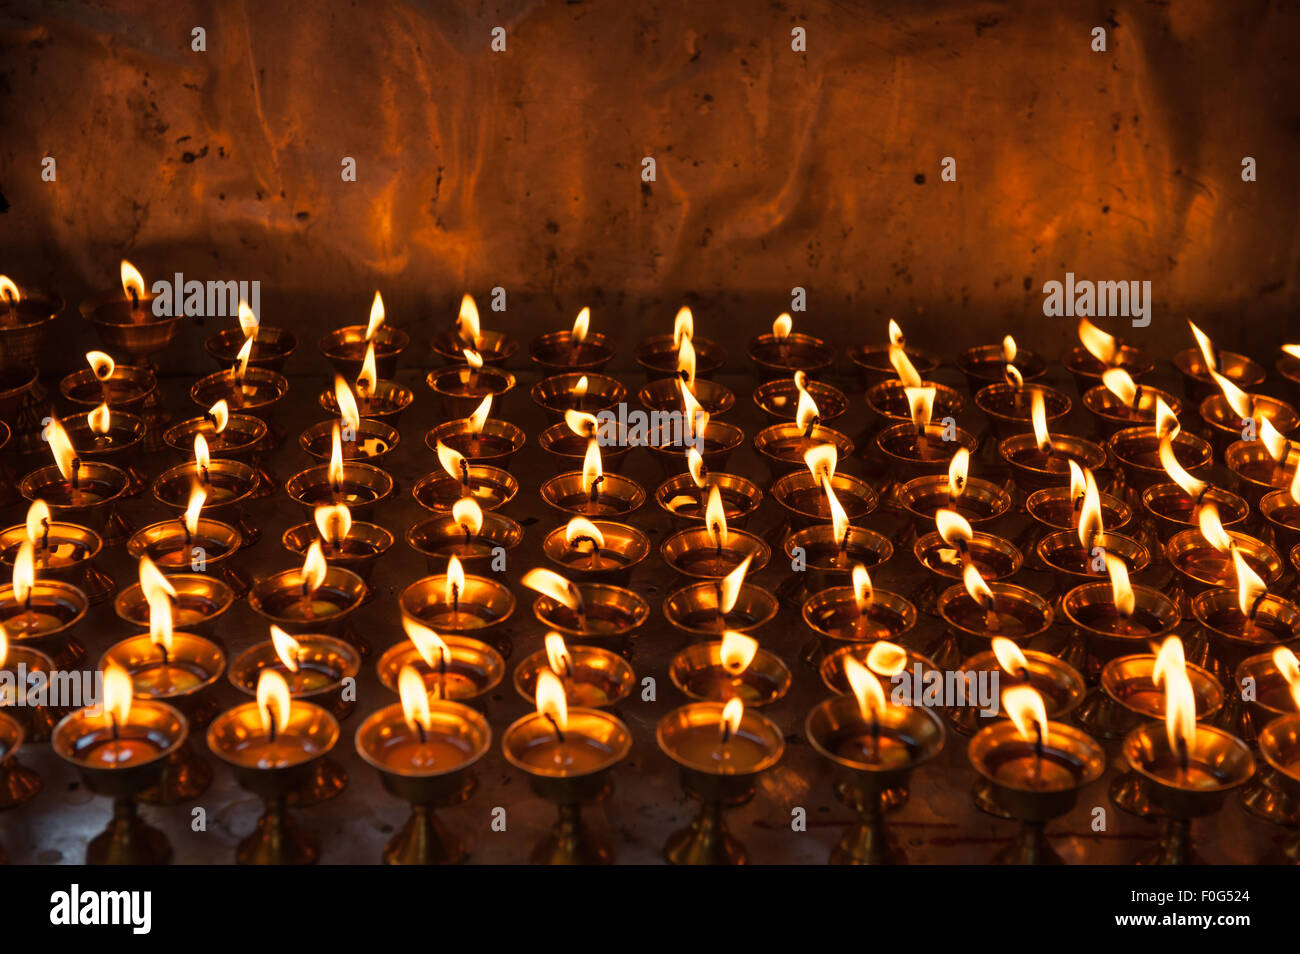 Dharamsala, Himachal Pradesh, India. Rows of burning butter lamps at the Buddhist temple in the Norbulingka Institute. - Stock Image